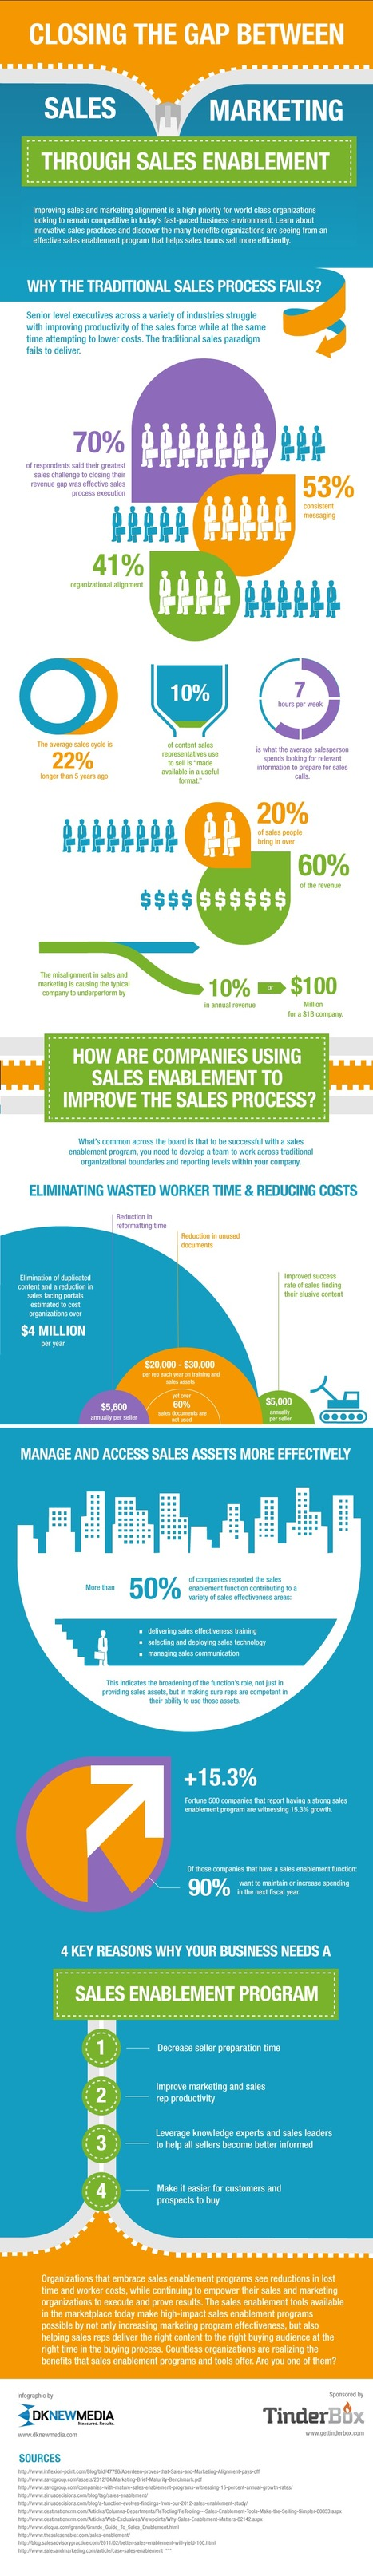 Closing the Gap Between Sales and Marketing Through Sales Enablement [INFOGRAPHIC] - TinderBox | Strategic sales management | Scoop.it